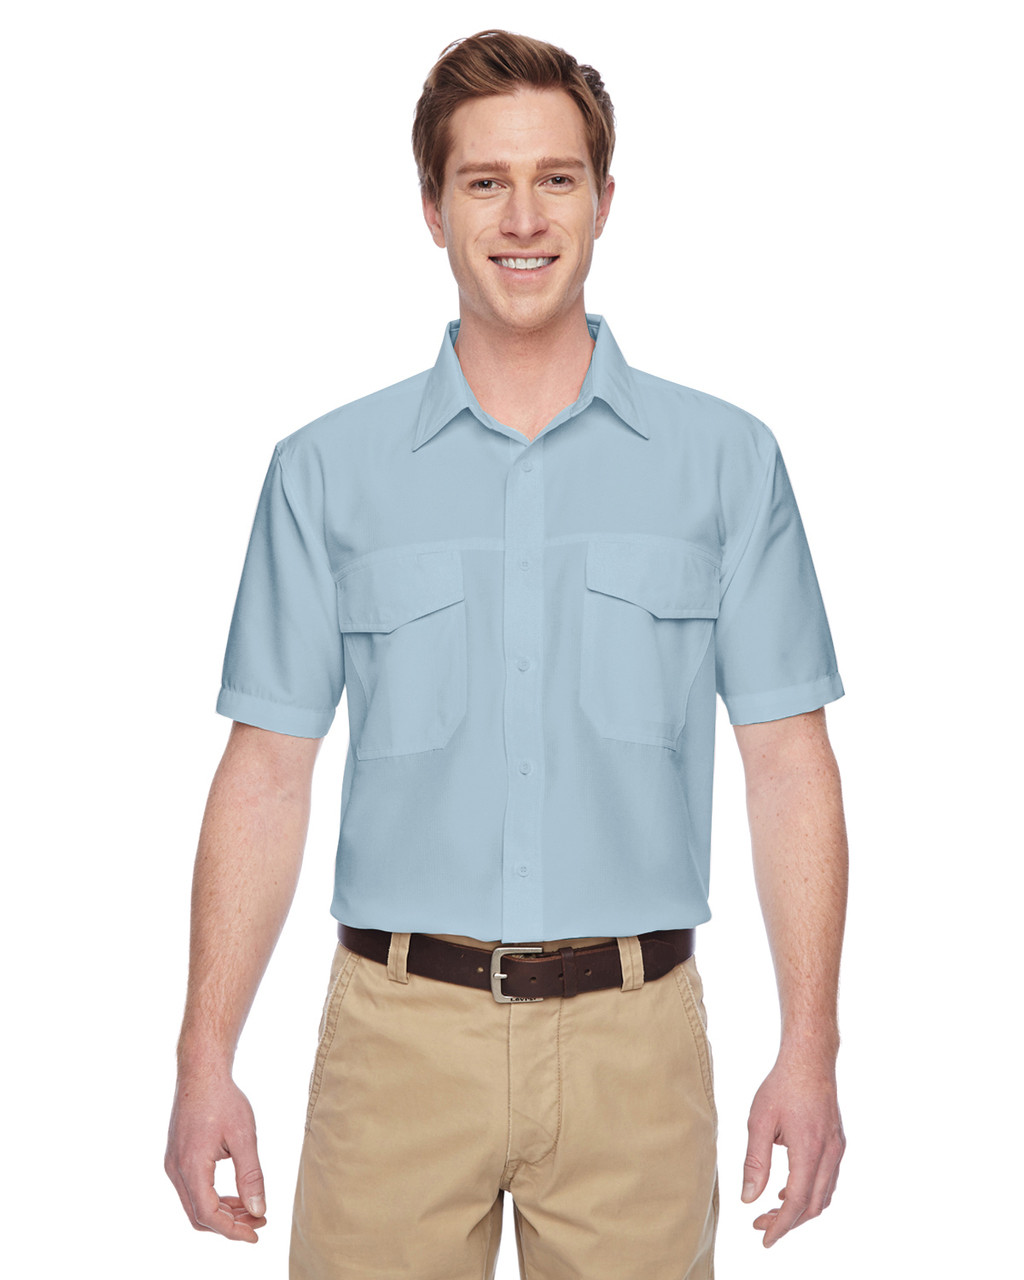 Cloud Blue - M580 Harriton Men's Key West Short-Sleeve Performance Staff Shirt